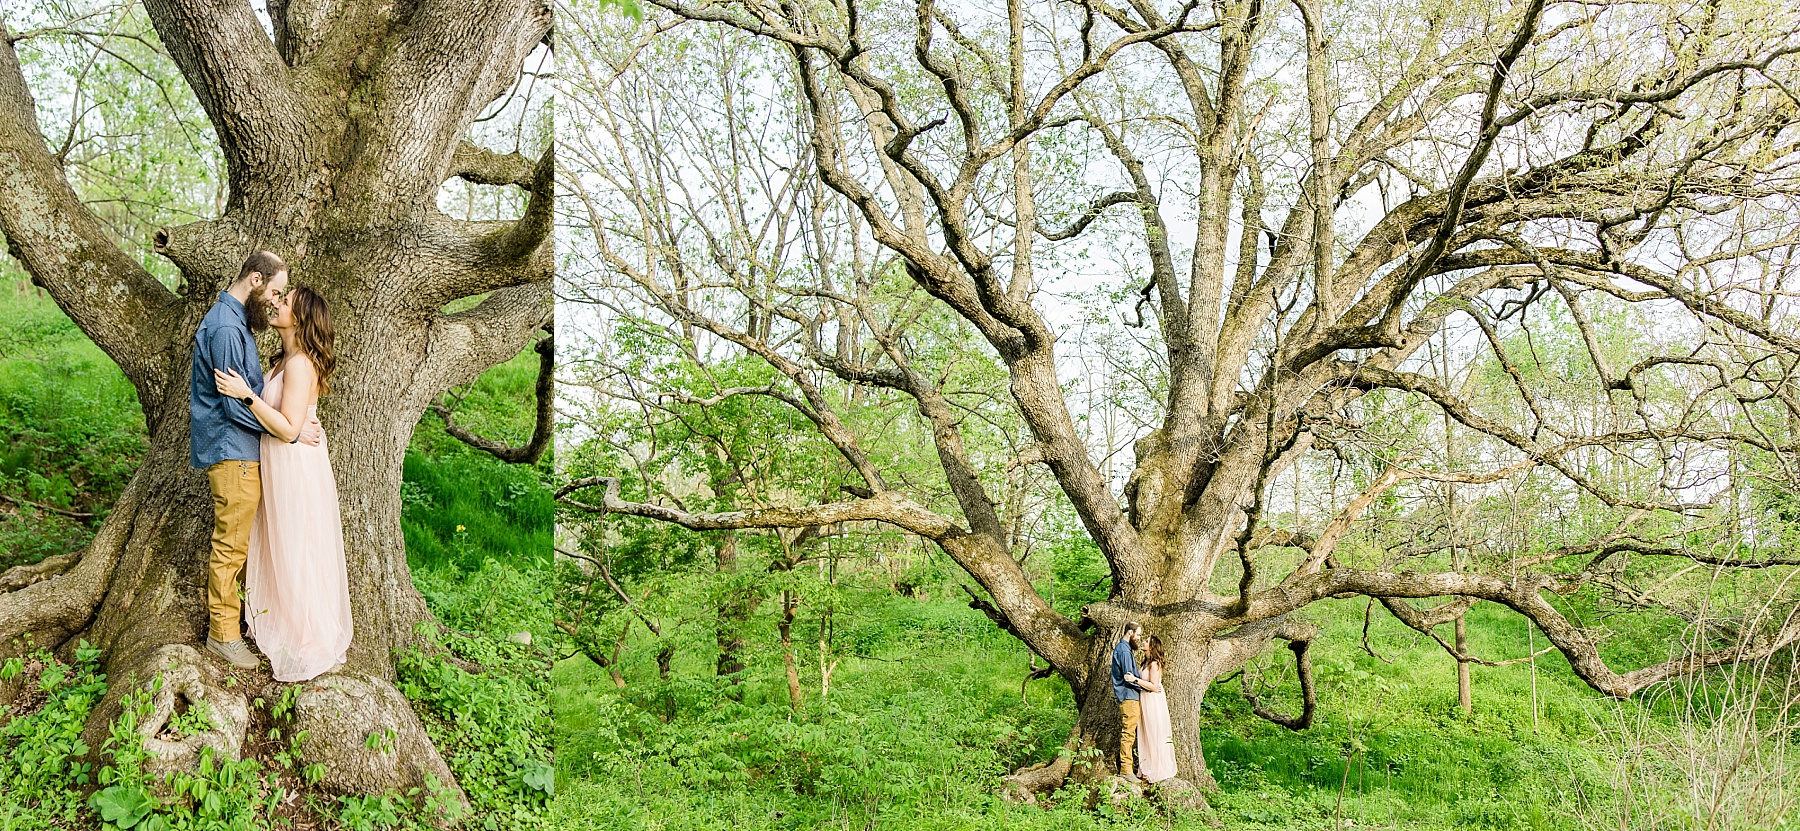 monticello indiana wedding engagement photography simple adventure weird_0030.jpg